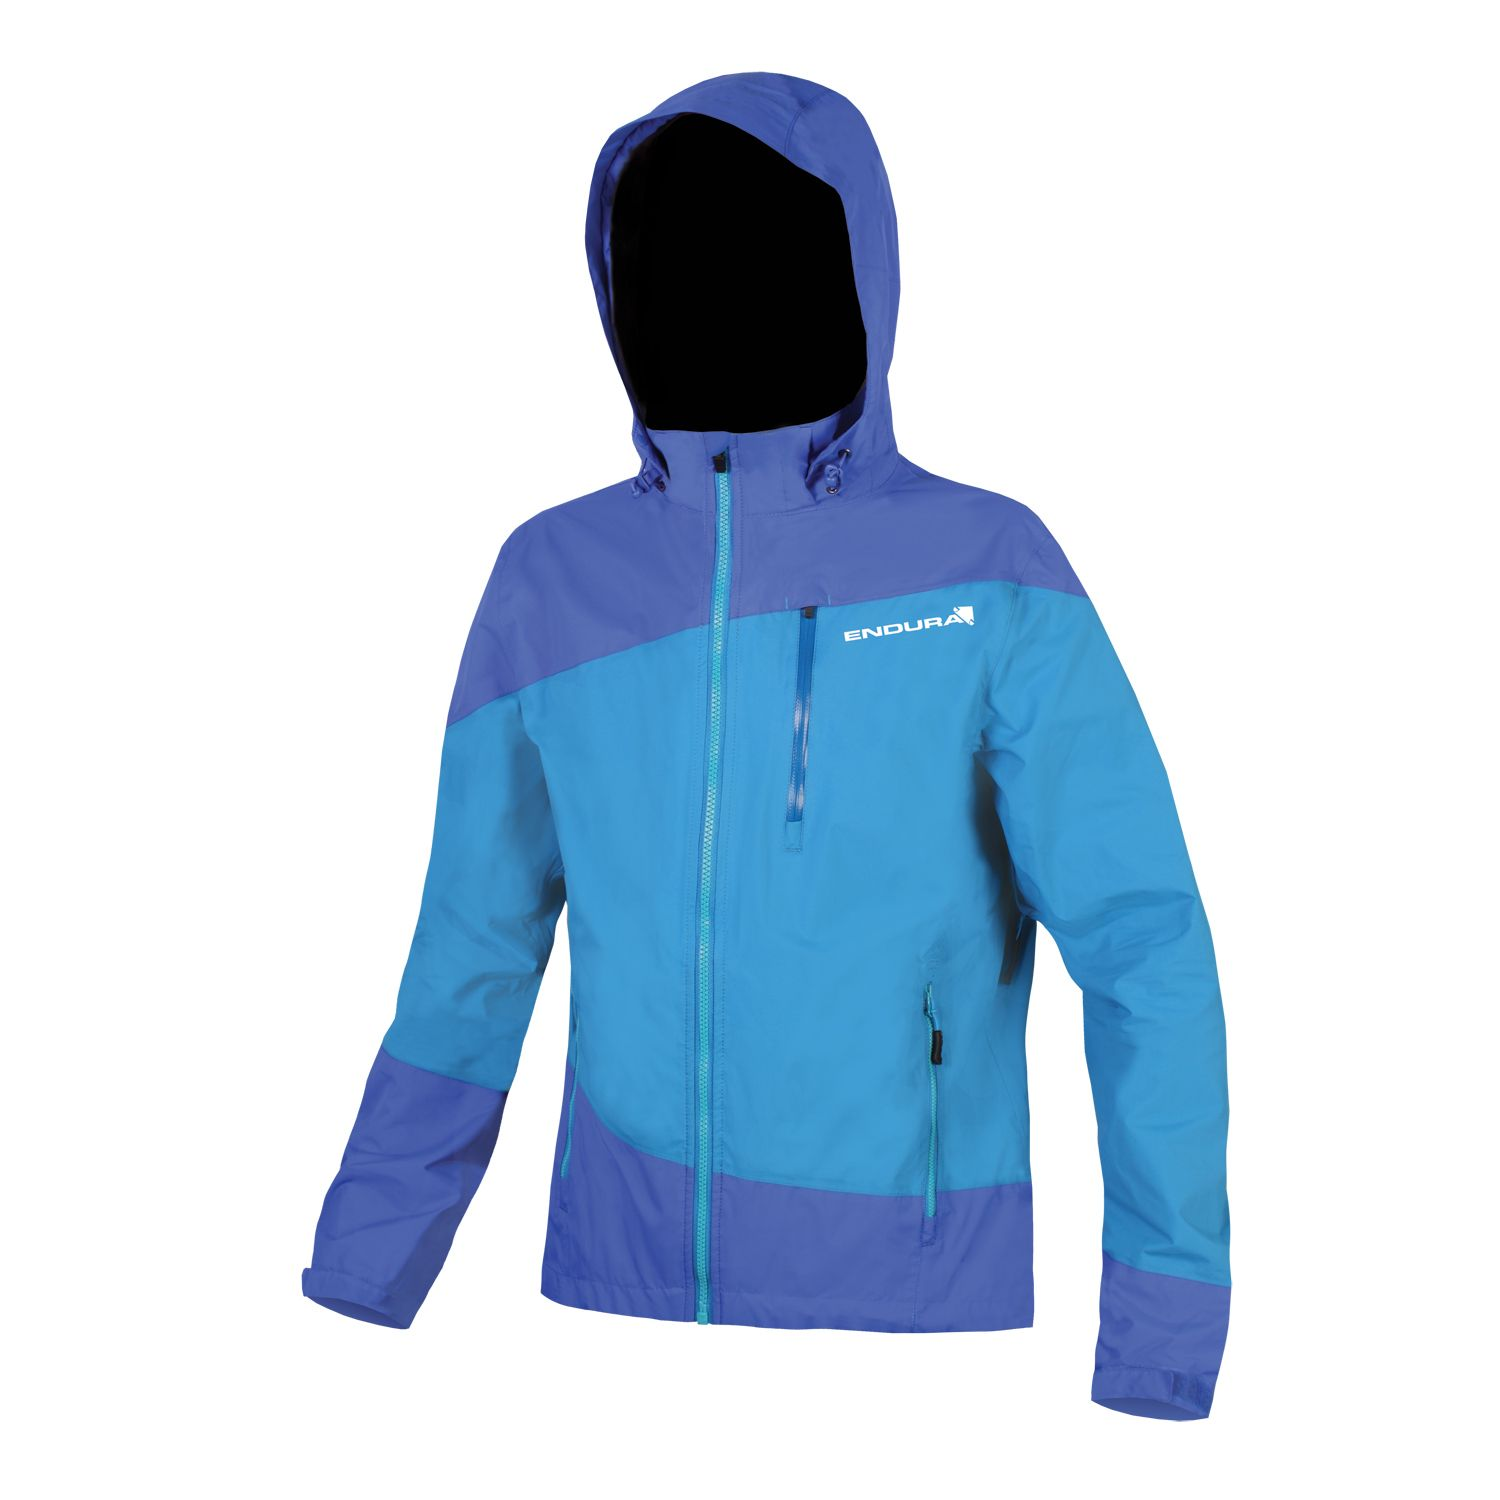 Endura Singletrack Jacket Blue